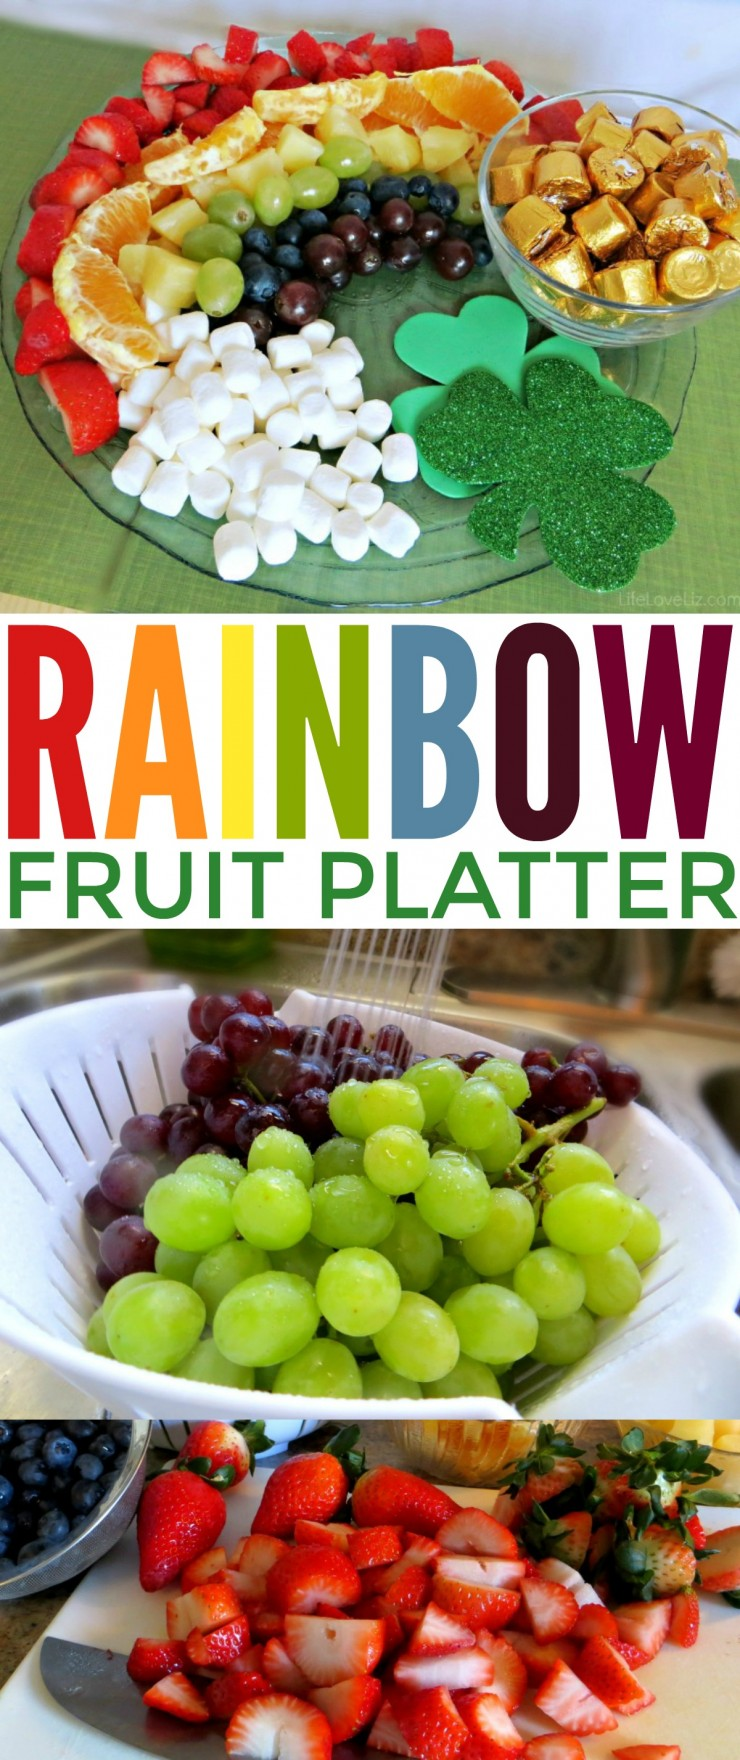 This Rainbow fruit platter is super cute and perfect for parties, pot-lucks, and of course your St. Patrick's Day celebration.